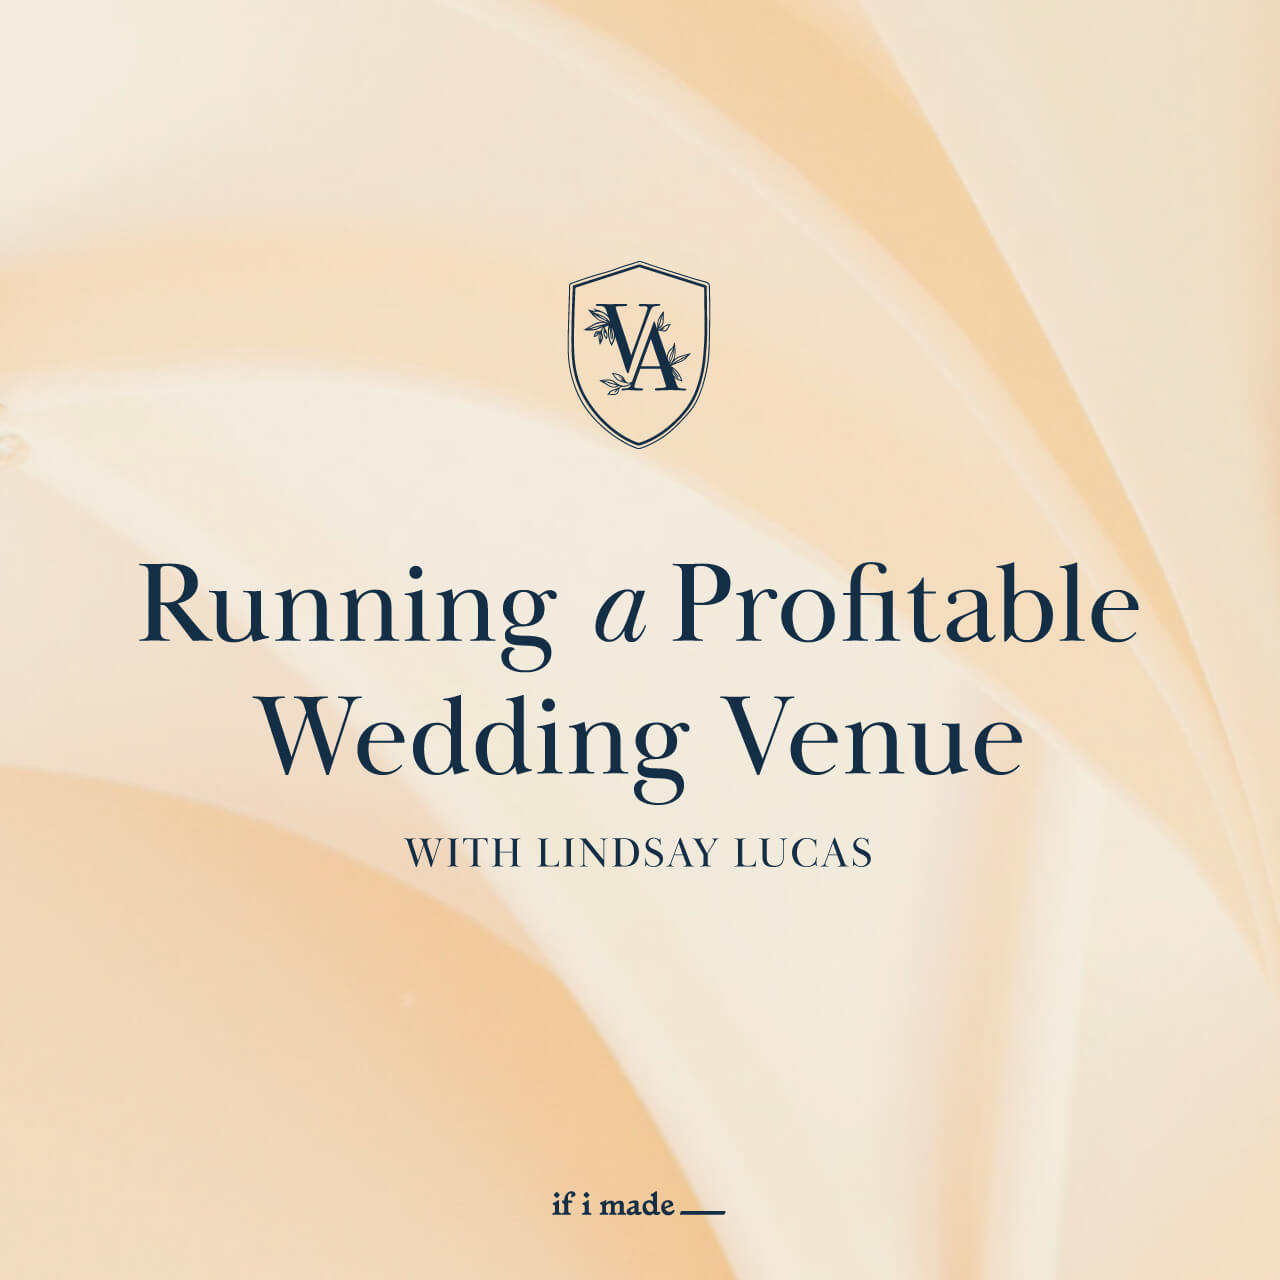 Running a Profitable Wedding Venue with Lindsay Lucas